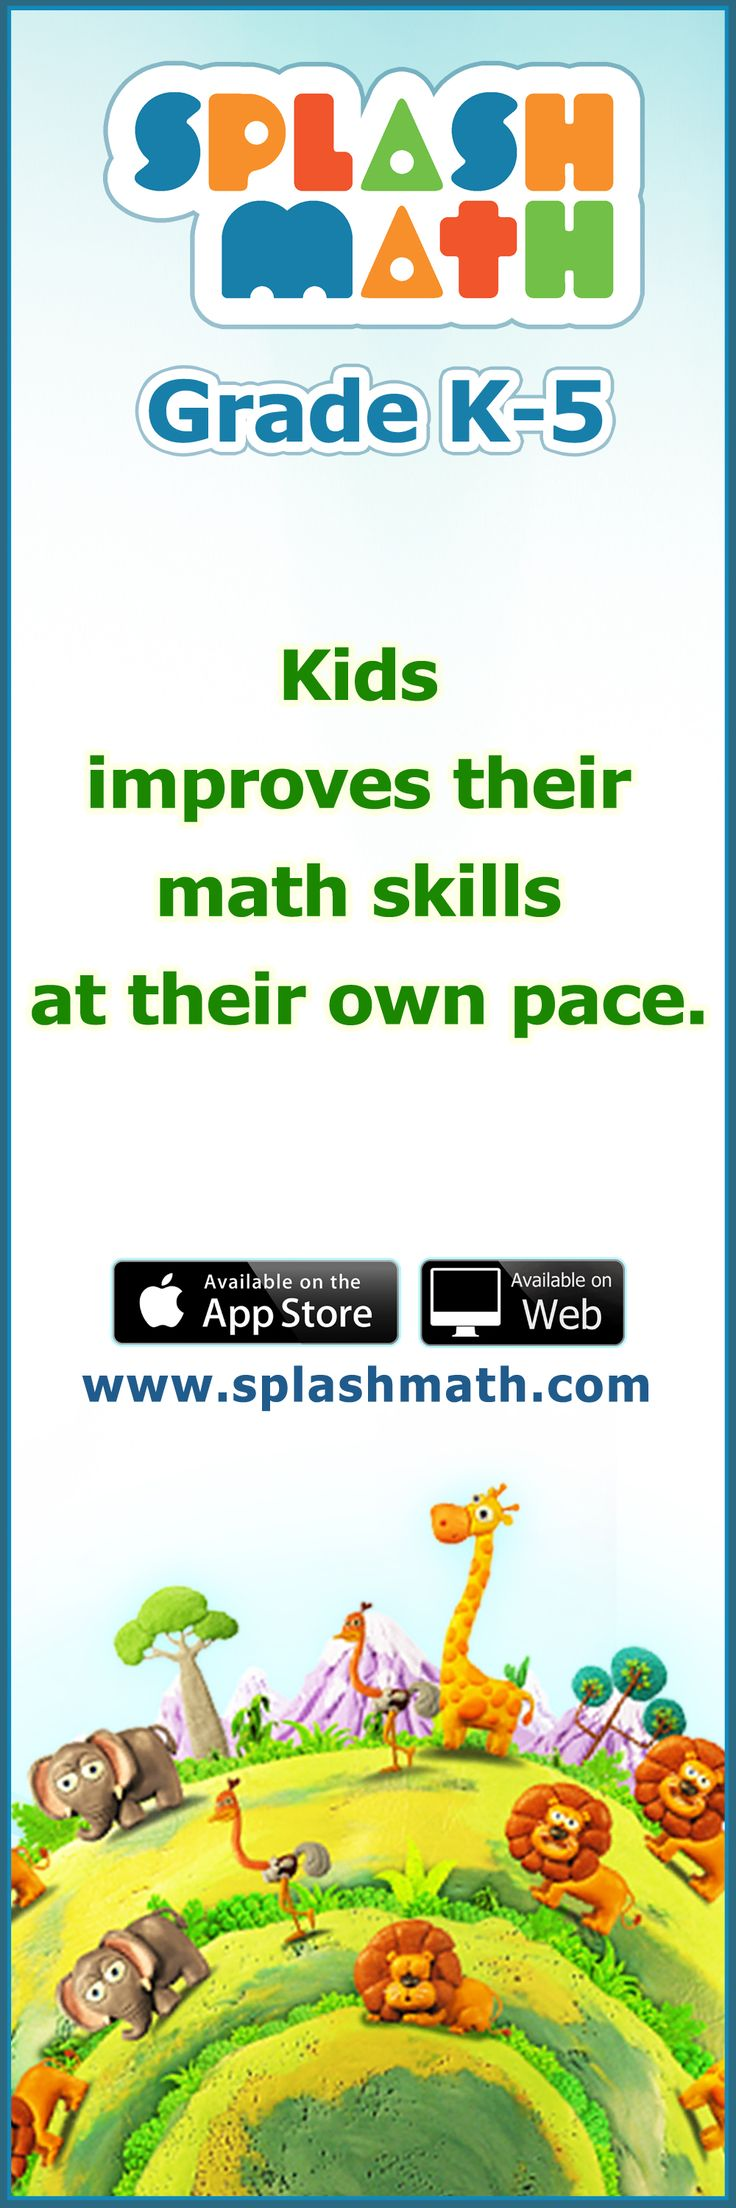 Worksheet Online Math Programs 1000 images about splash math k 5 fun learning games for grades 1 to is an online program children thats safe